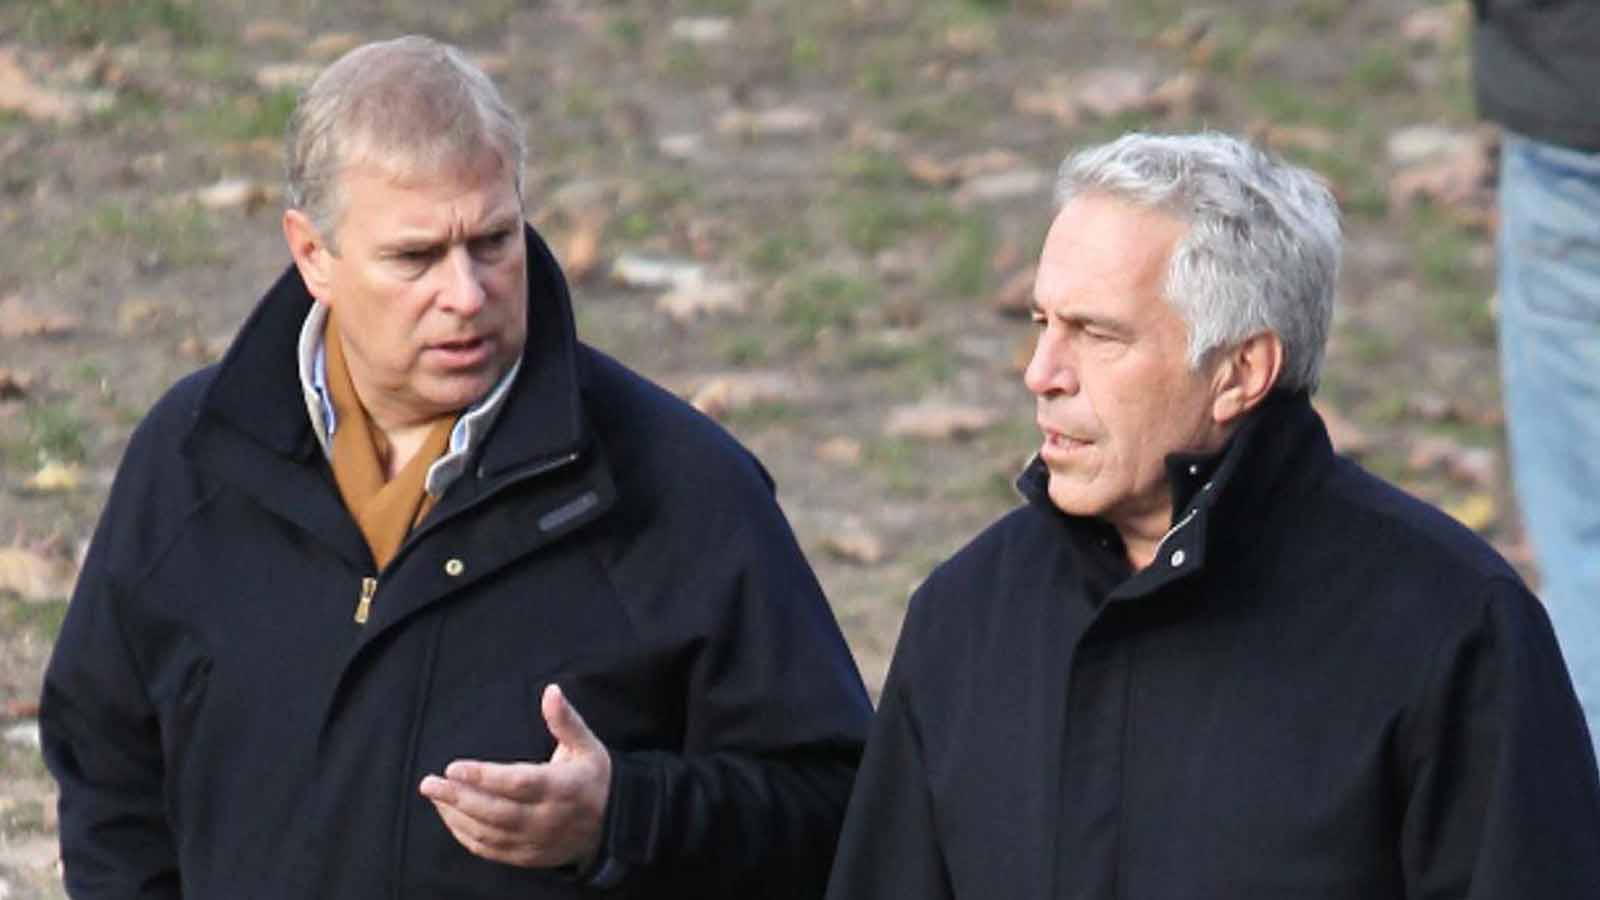 With the release of numerous documents thanks to the Ghislaine Maxwell case, we now know that Jeffrey Epstein got less jail time thanks to Prince Andrew.